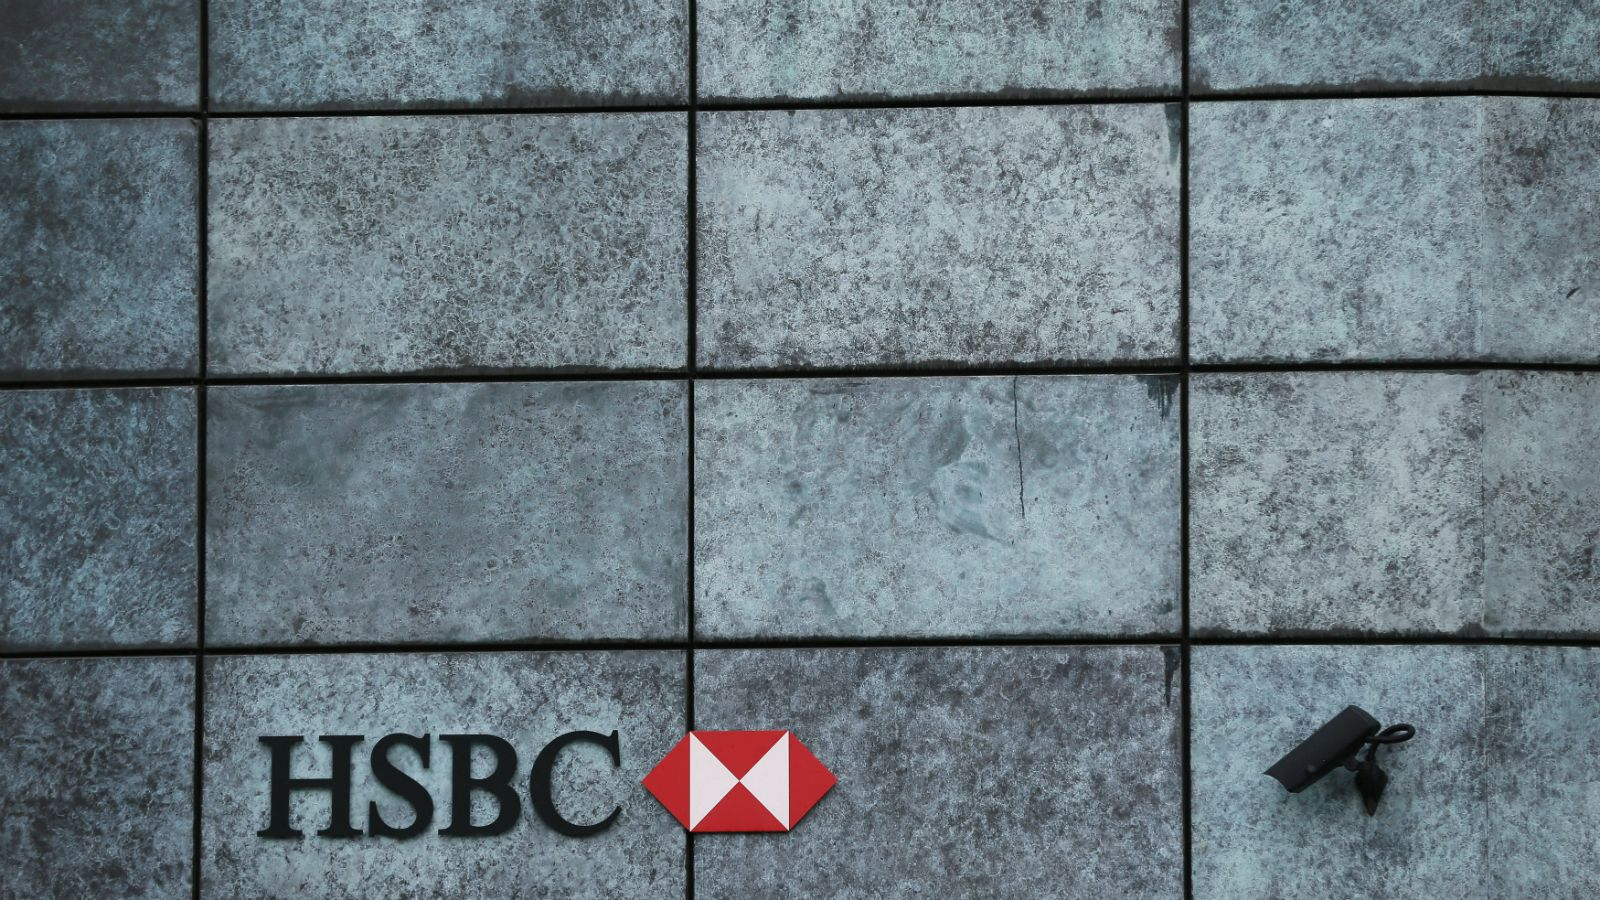 A branch of HSBC bank is seen in the City of London November 12, 2014. Britain's Financial Conduct Authority (FCA) said on Wednesday it has imposed fines totalling $1.7 billion on five banks for failing to control business practices in their G10 spot foreign exchange trading operations. Under the terms of the settlement, Citibank will pay $358 million, HSBC $343 million, JP Morgan Chase $352 million, Royal Bank of Scotland $344 million and UBS $371 million.